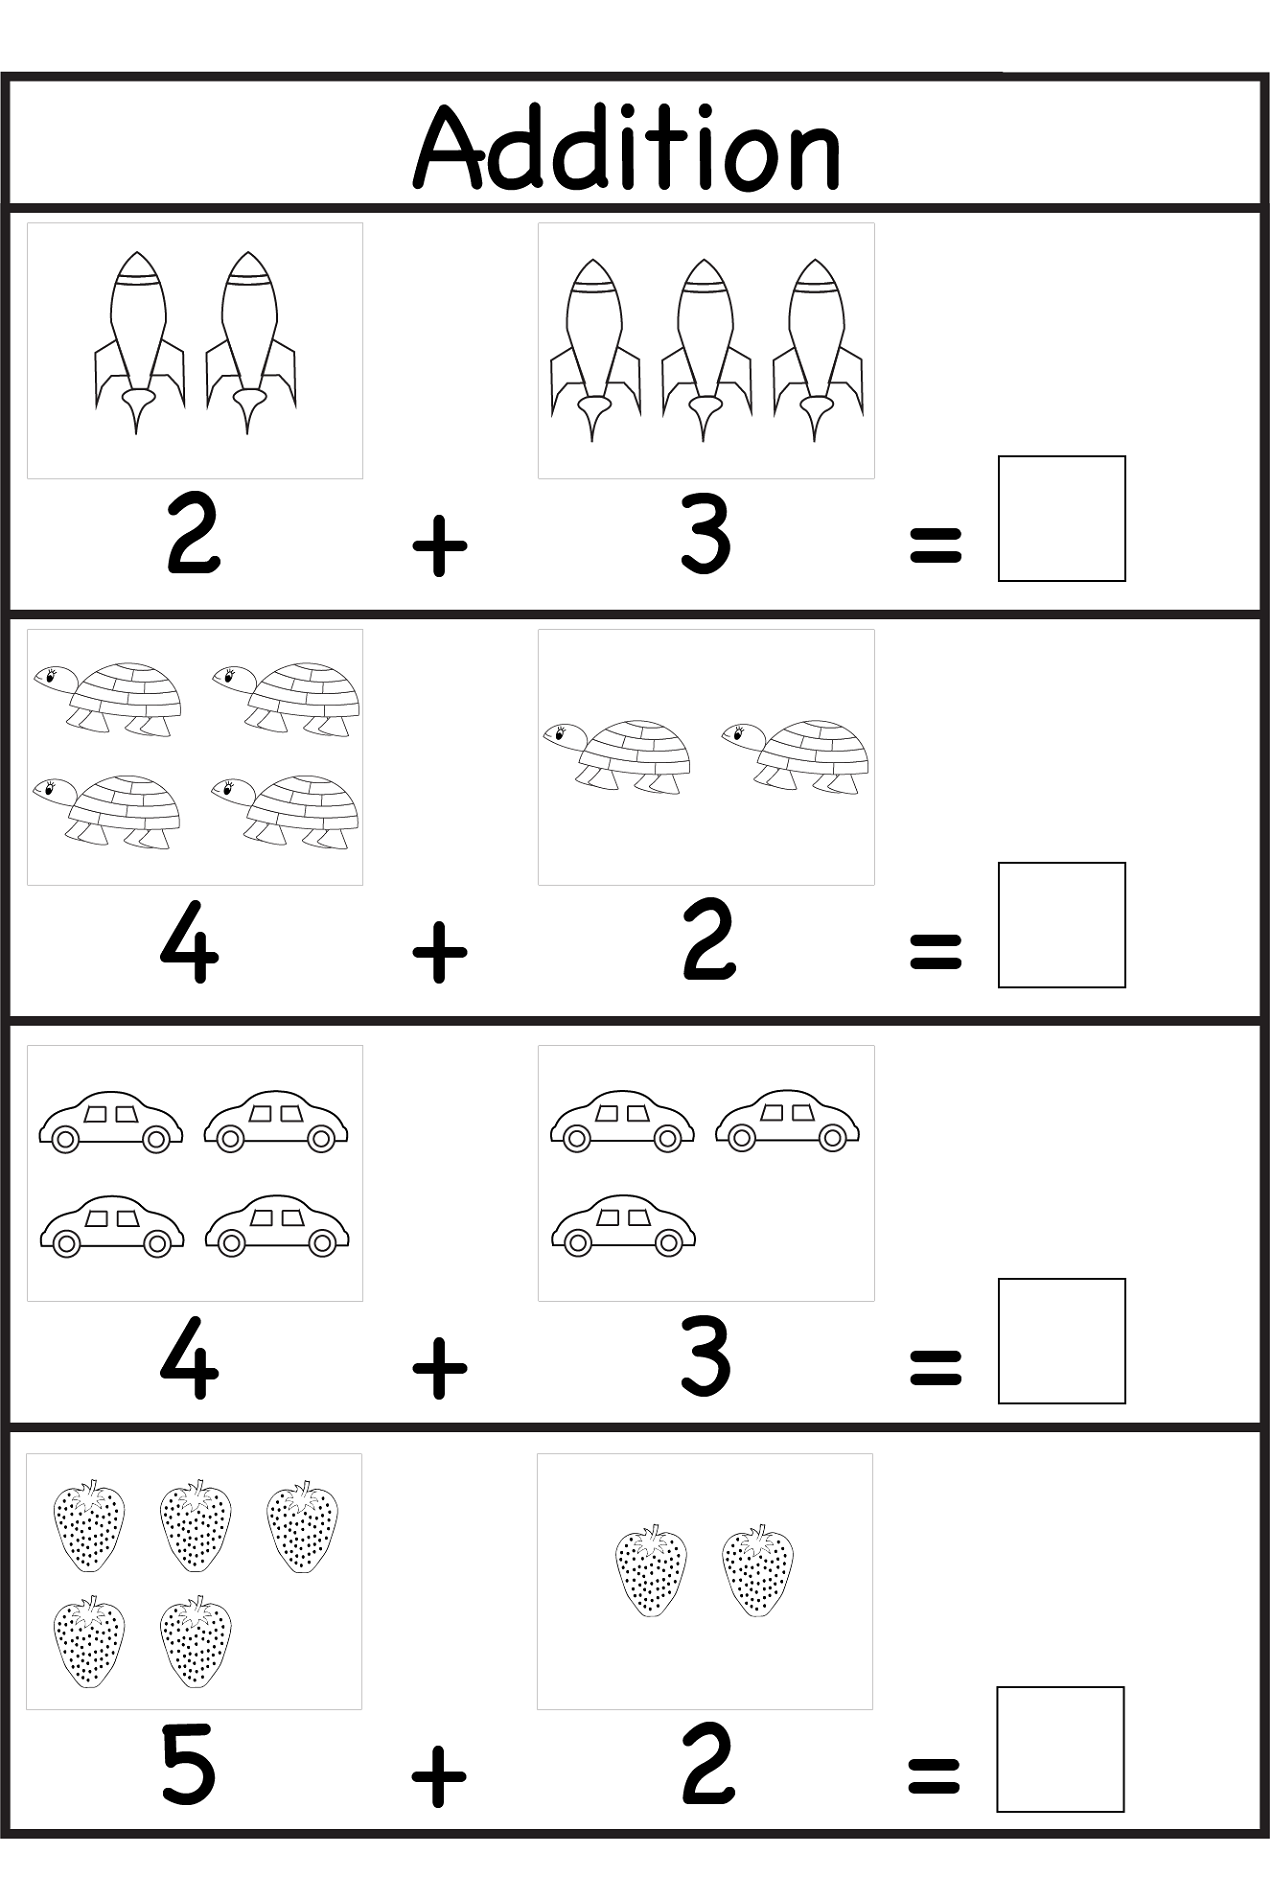 Worksheets Worksheets For 3 Year Olds free worksheets for 3 year olds delibertad collection of learning sharebrowse